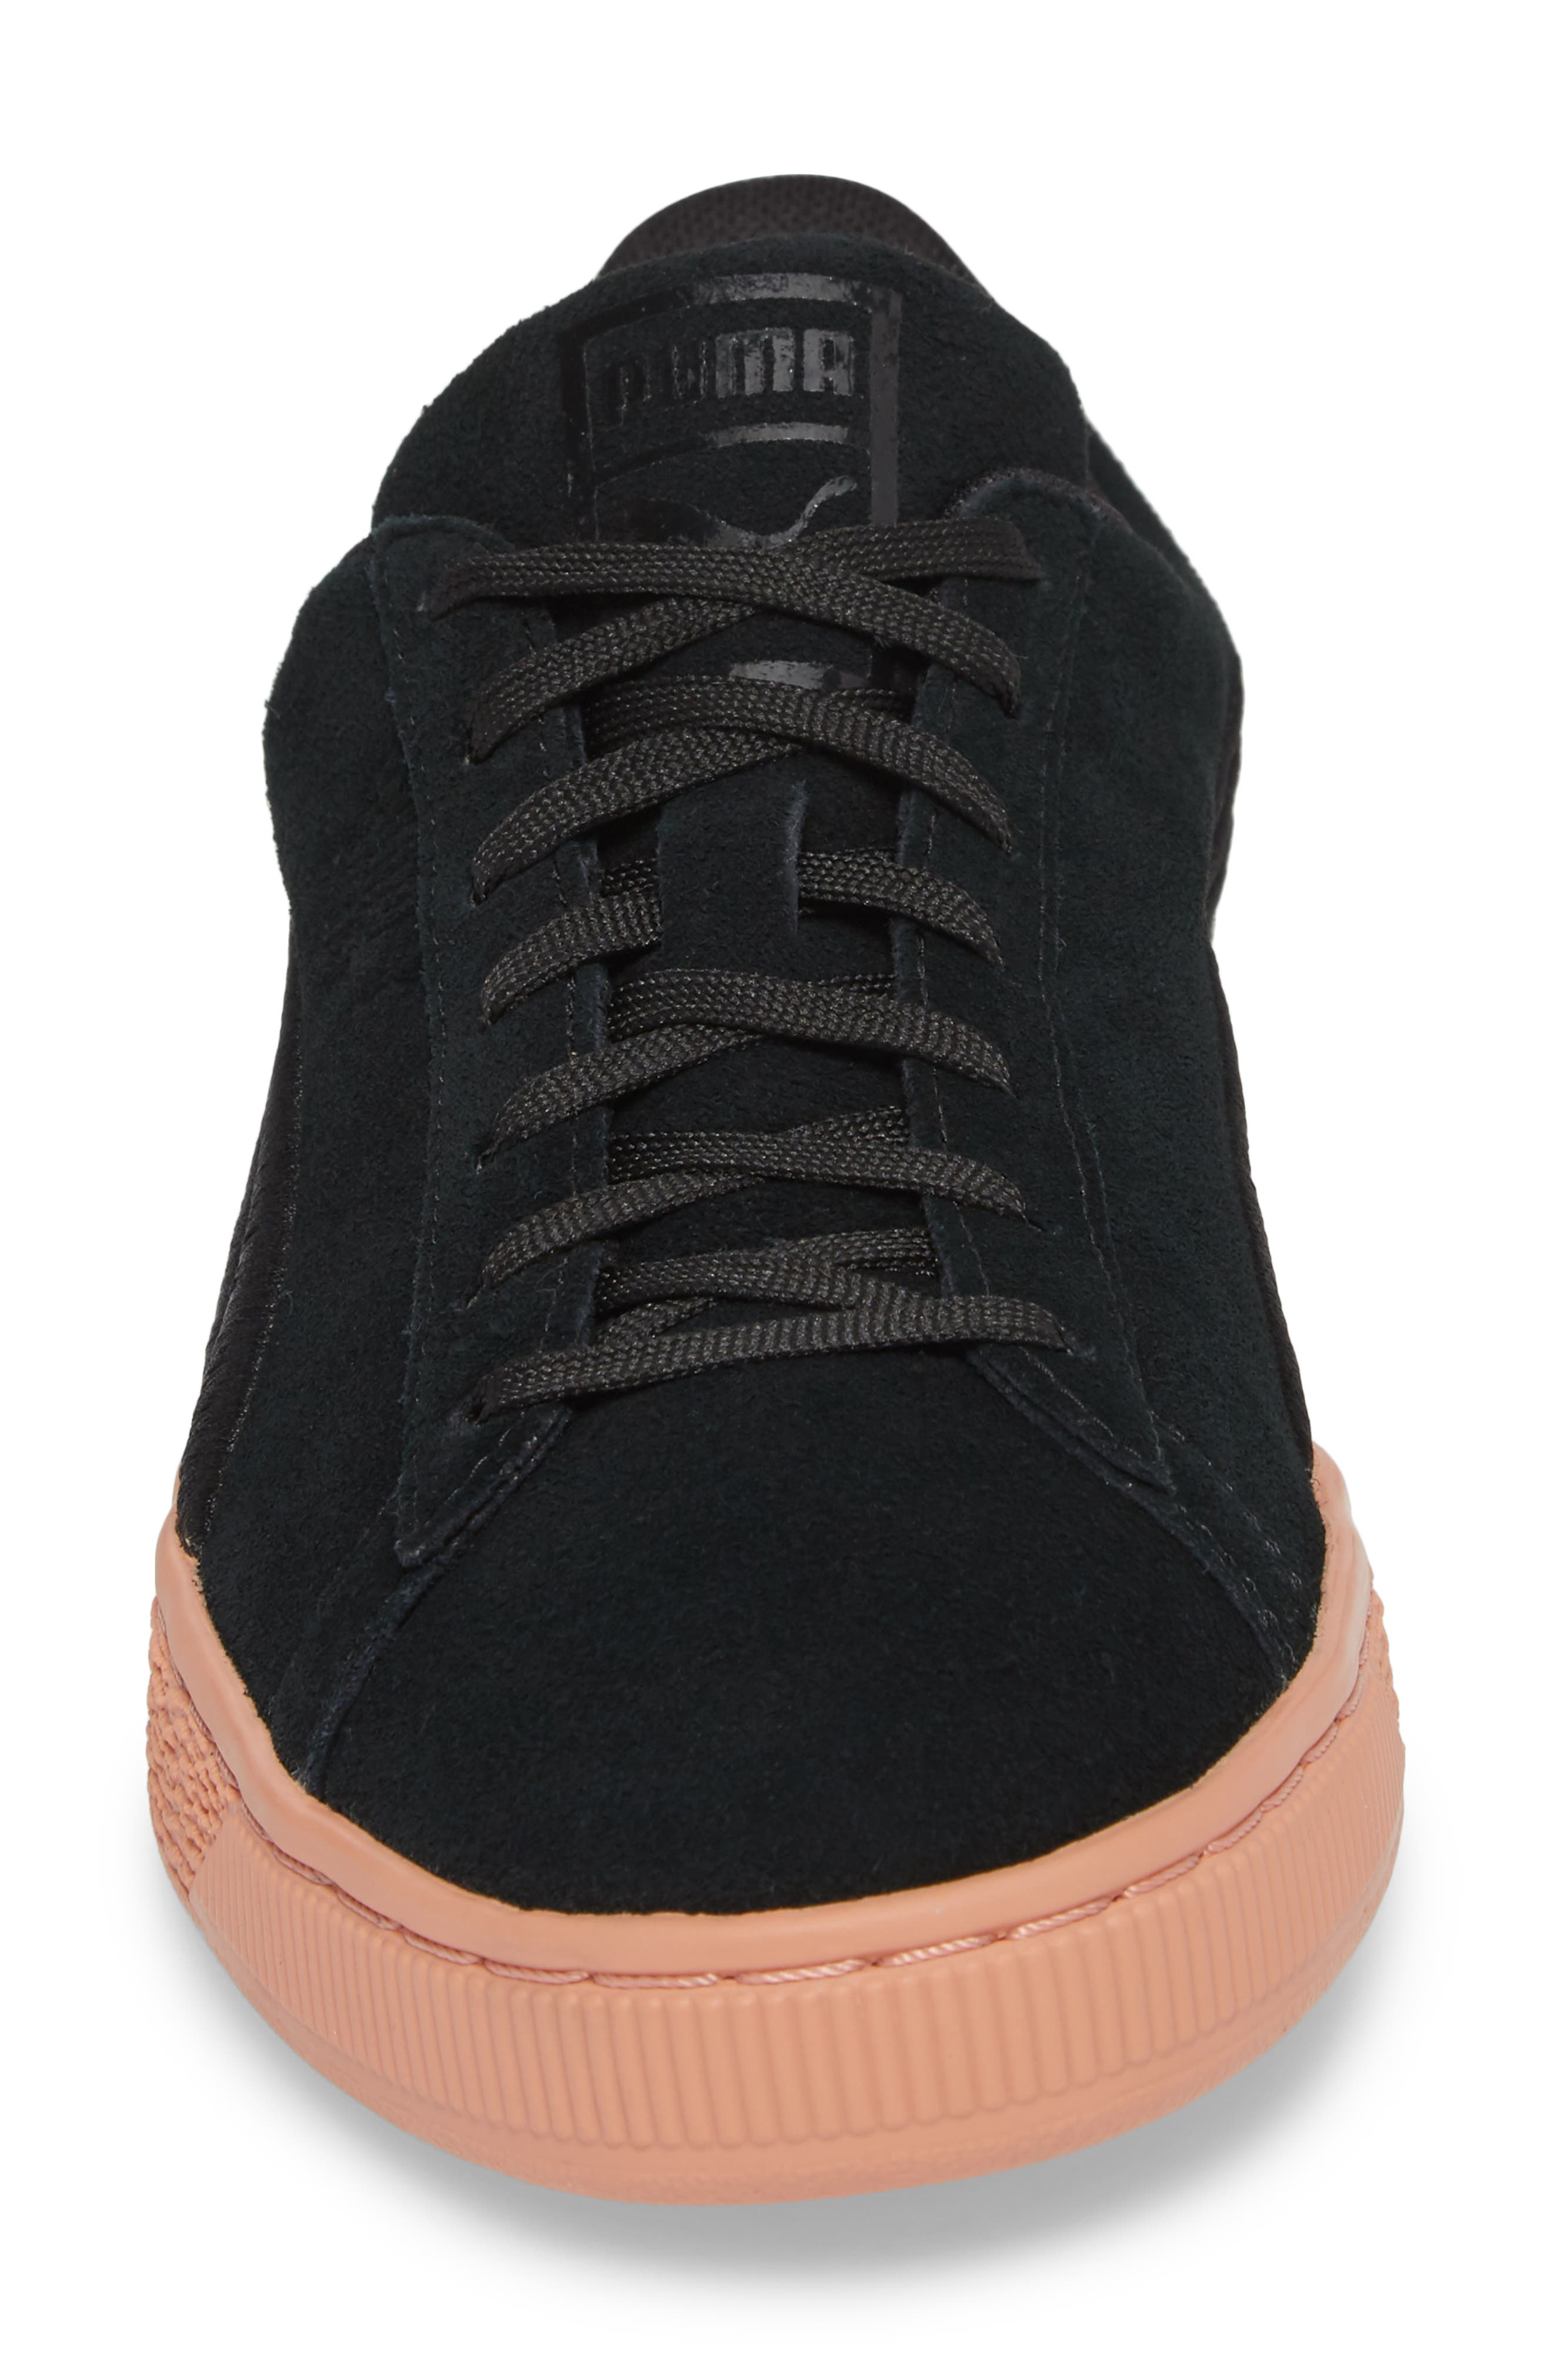 Suede Classic Bade Sneaker,                             Alternate thumbnail 4, color,                             001